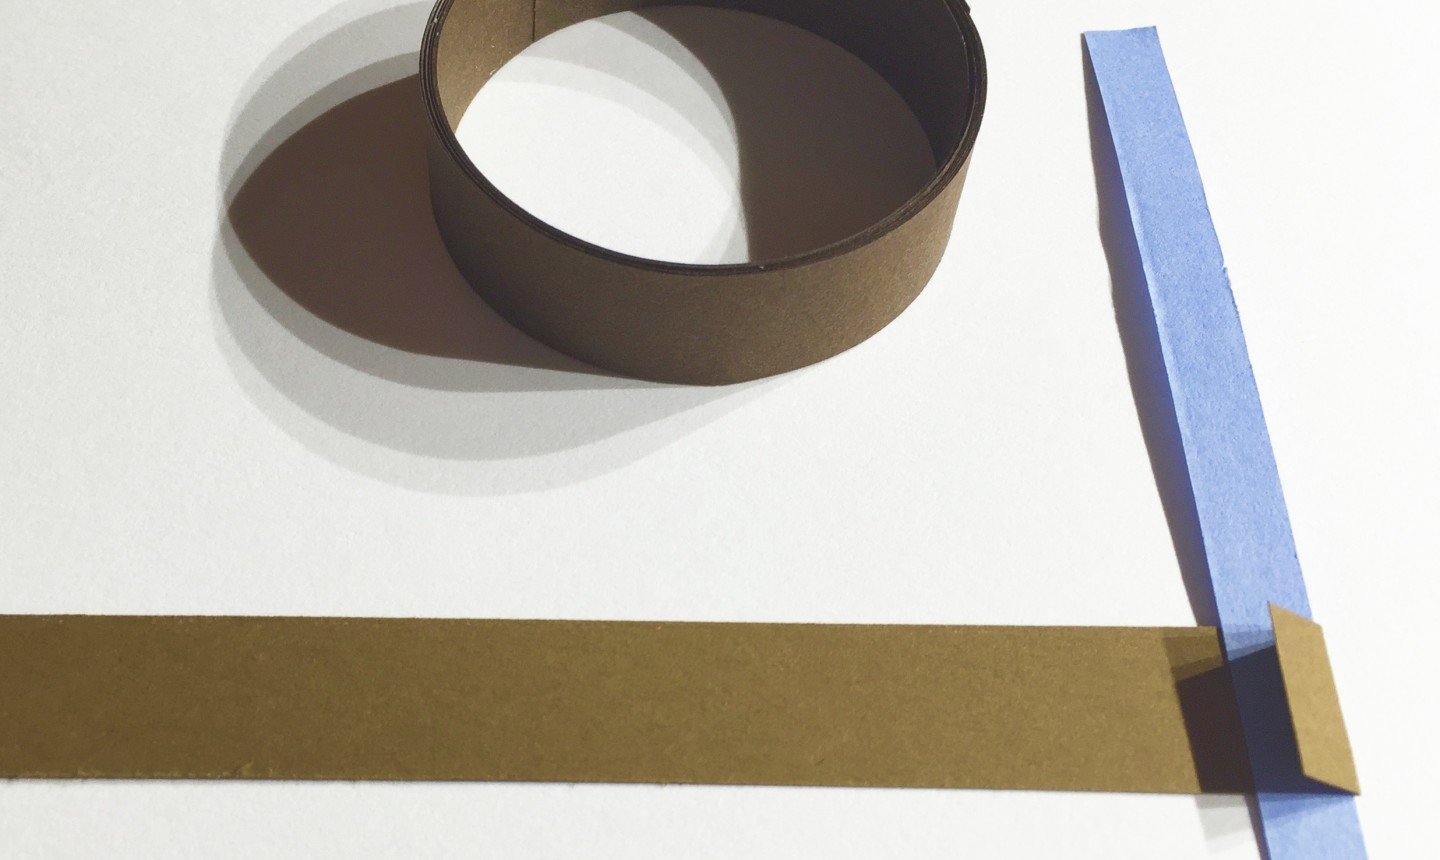 Brown and blue strip